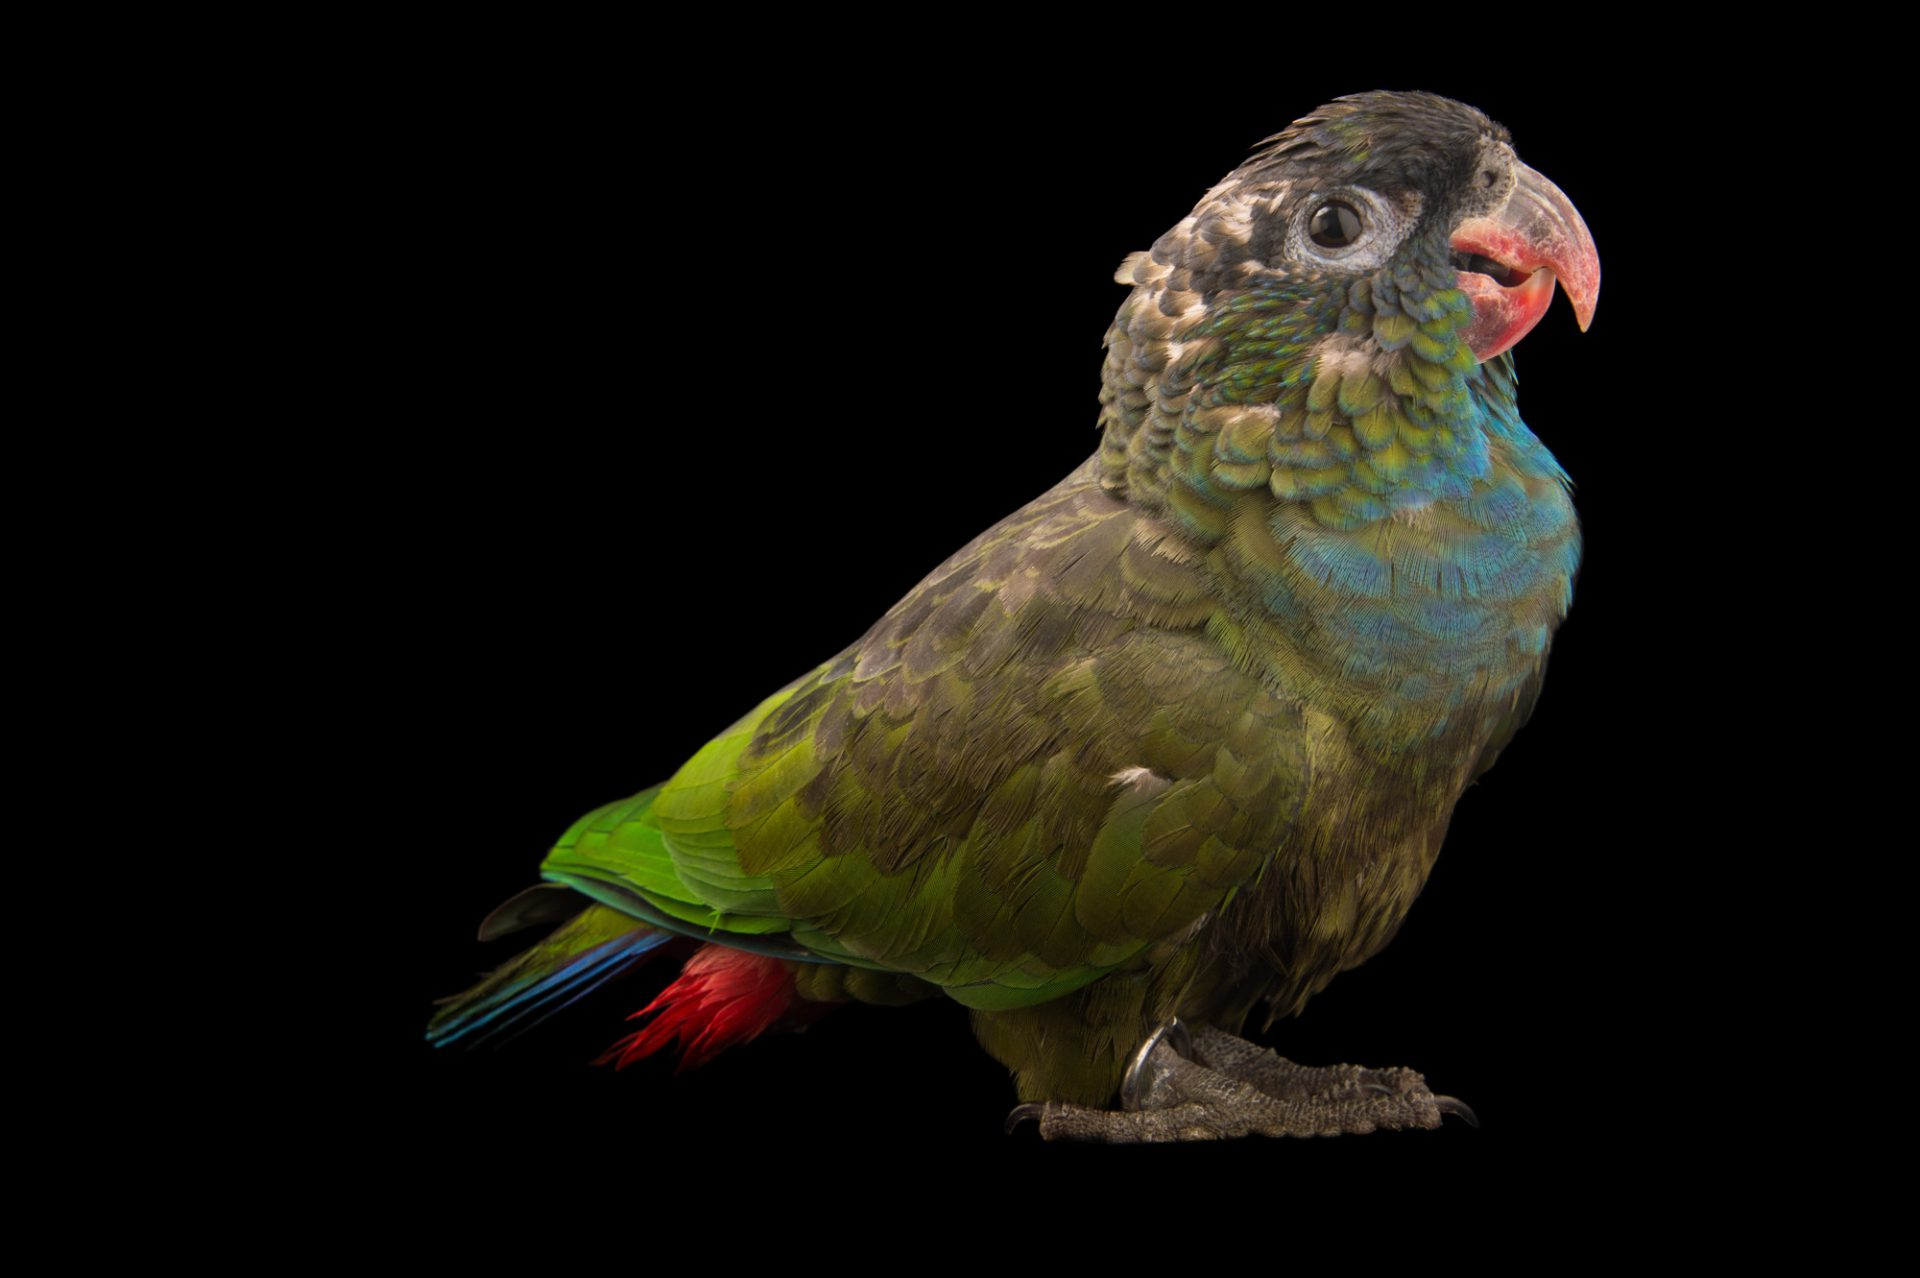 Photo: Red-billed parrot (Pionus sordidus) at Piscilago in Bogota, Colombia.